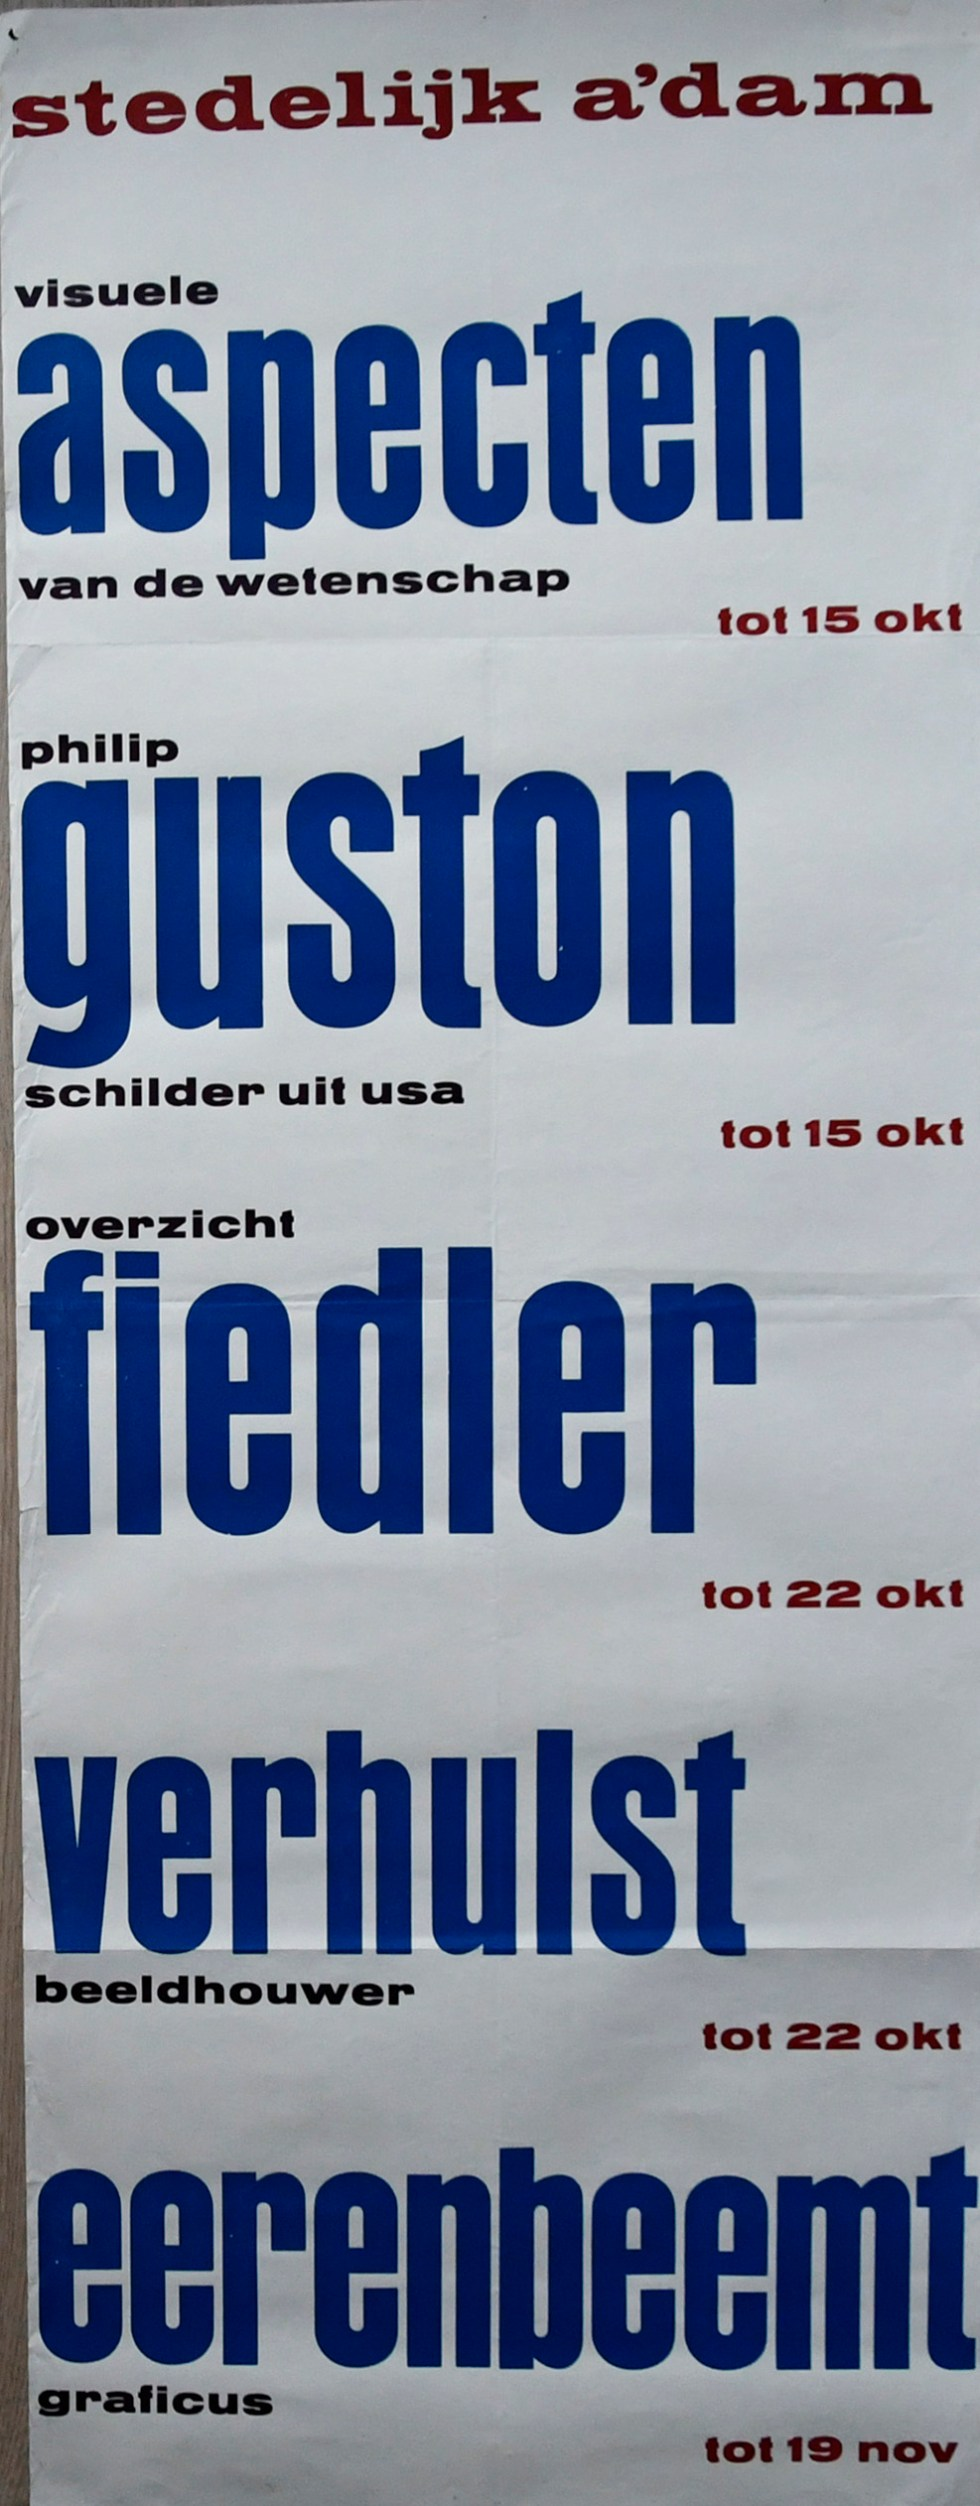 guston a poster.jpg